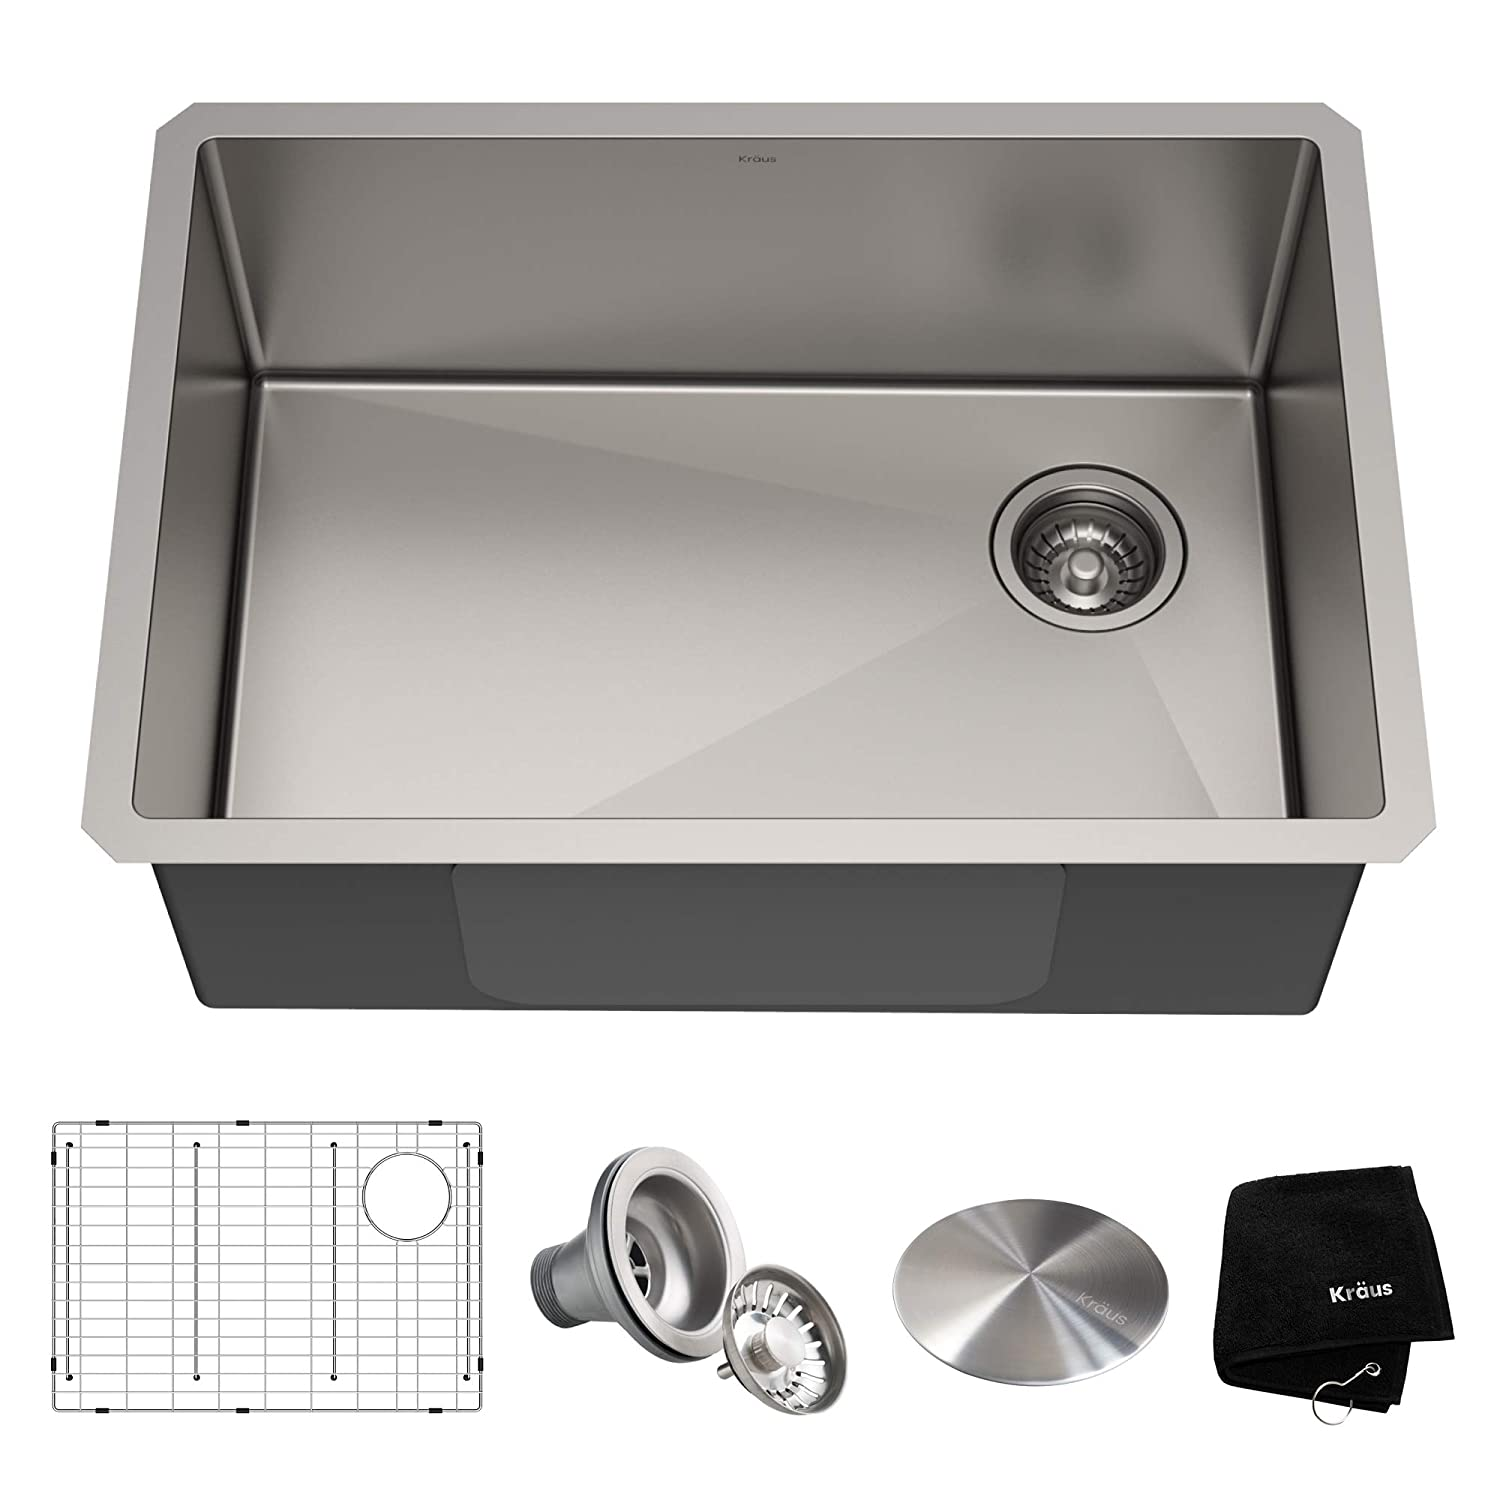 Kraus KHU110-27 Standart PRO Kitchen Stainless Steel Sink 27 Inch